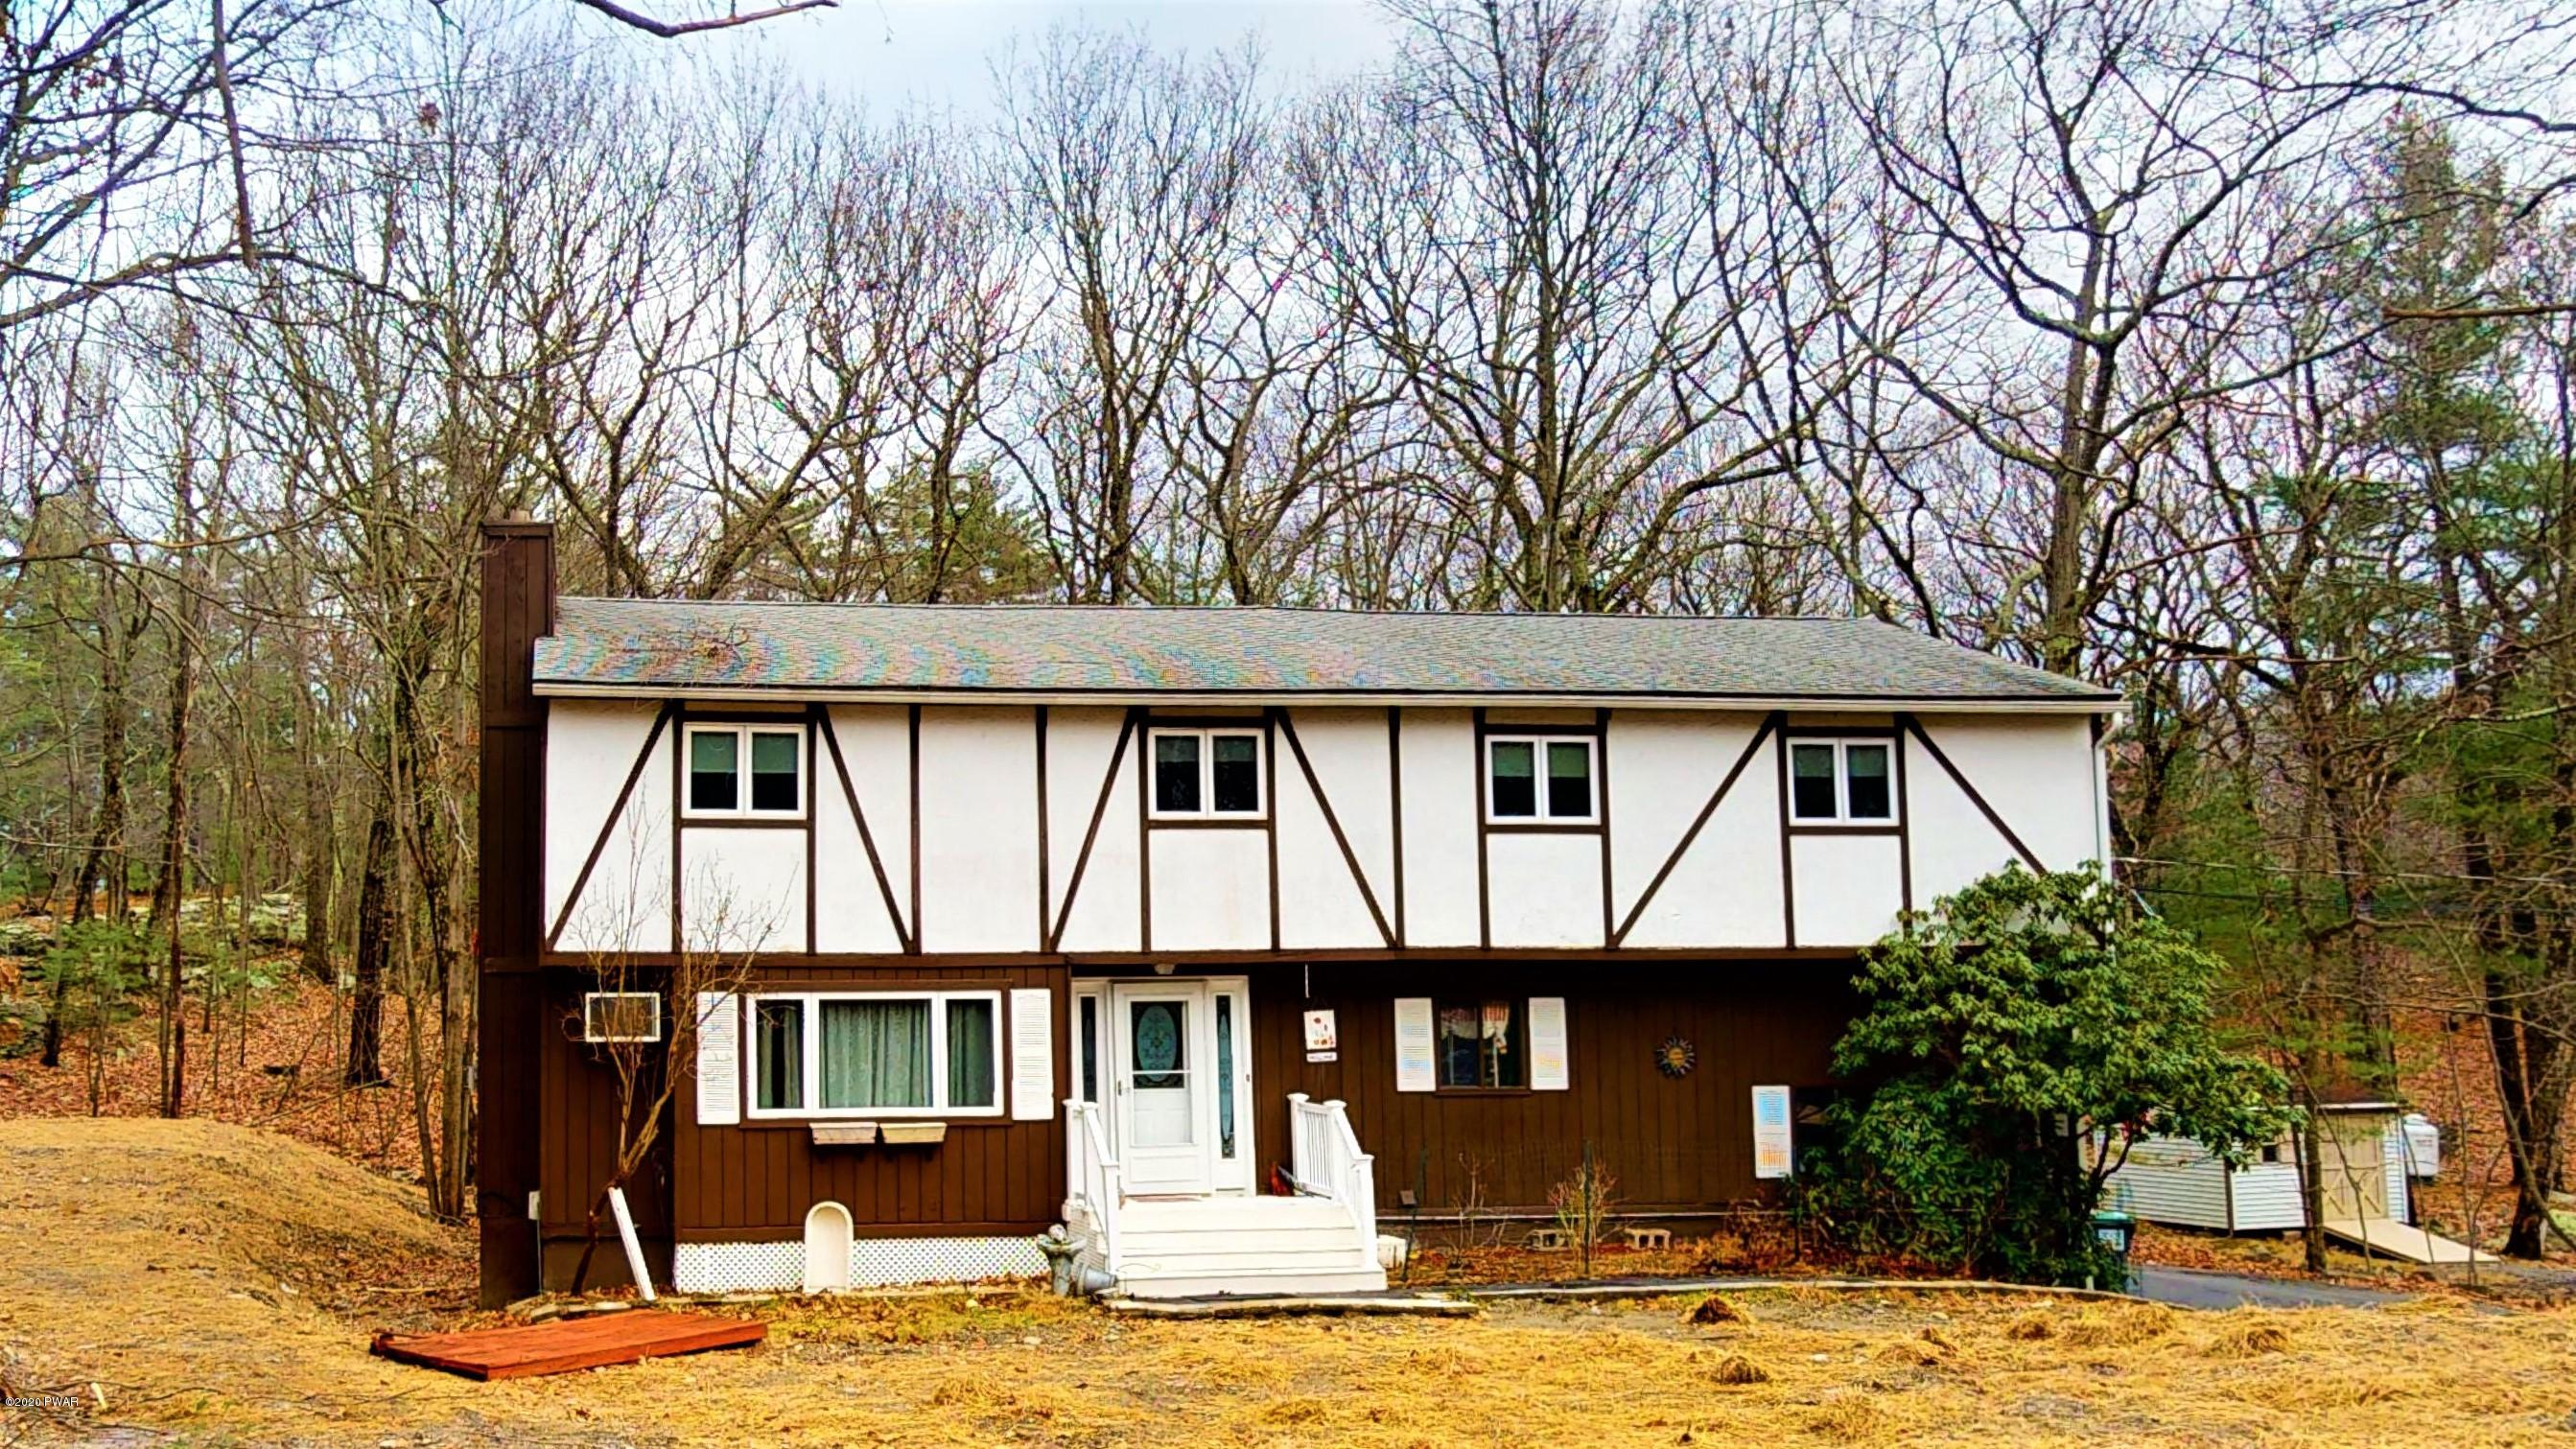 Mls 20 4713 383 Wild Acres Dr Dingmans Ferry Pa 18328